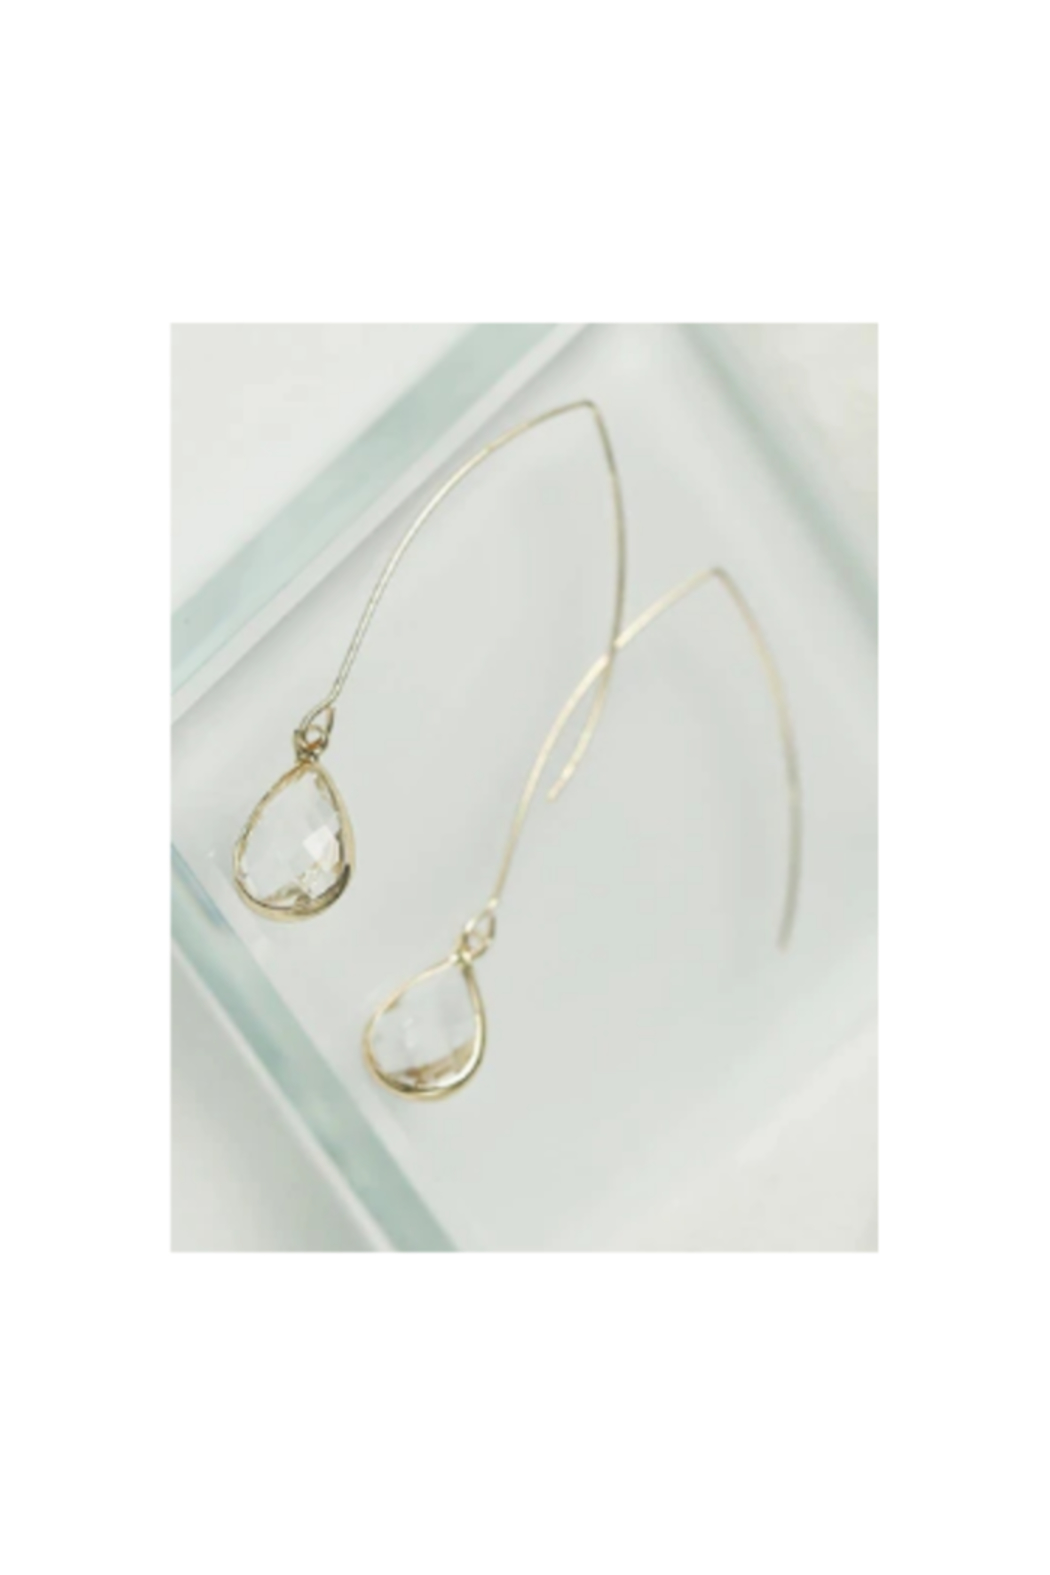 The Birds Nest SIMPLE WATER DROP EARRINGS - Main Image